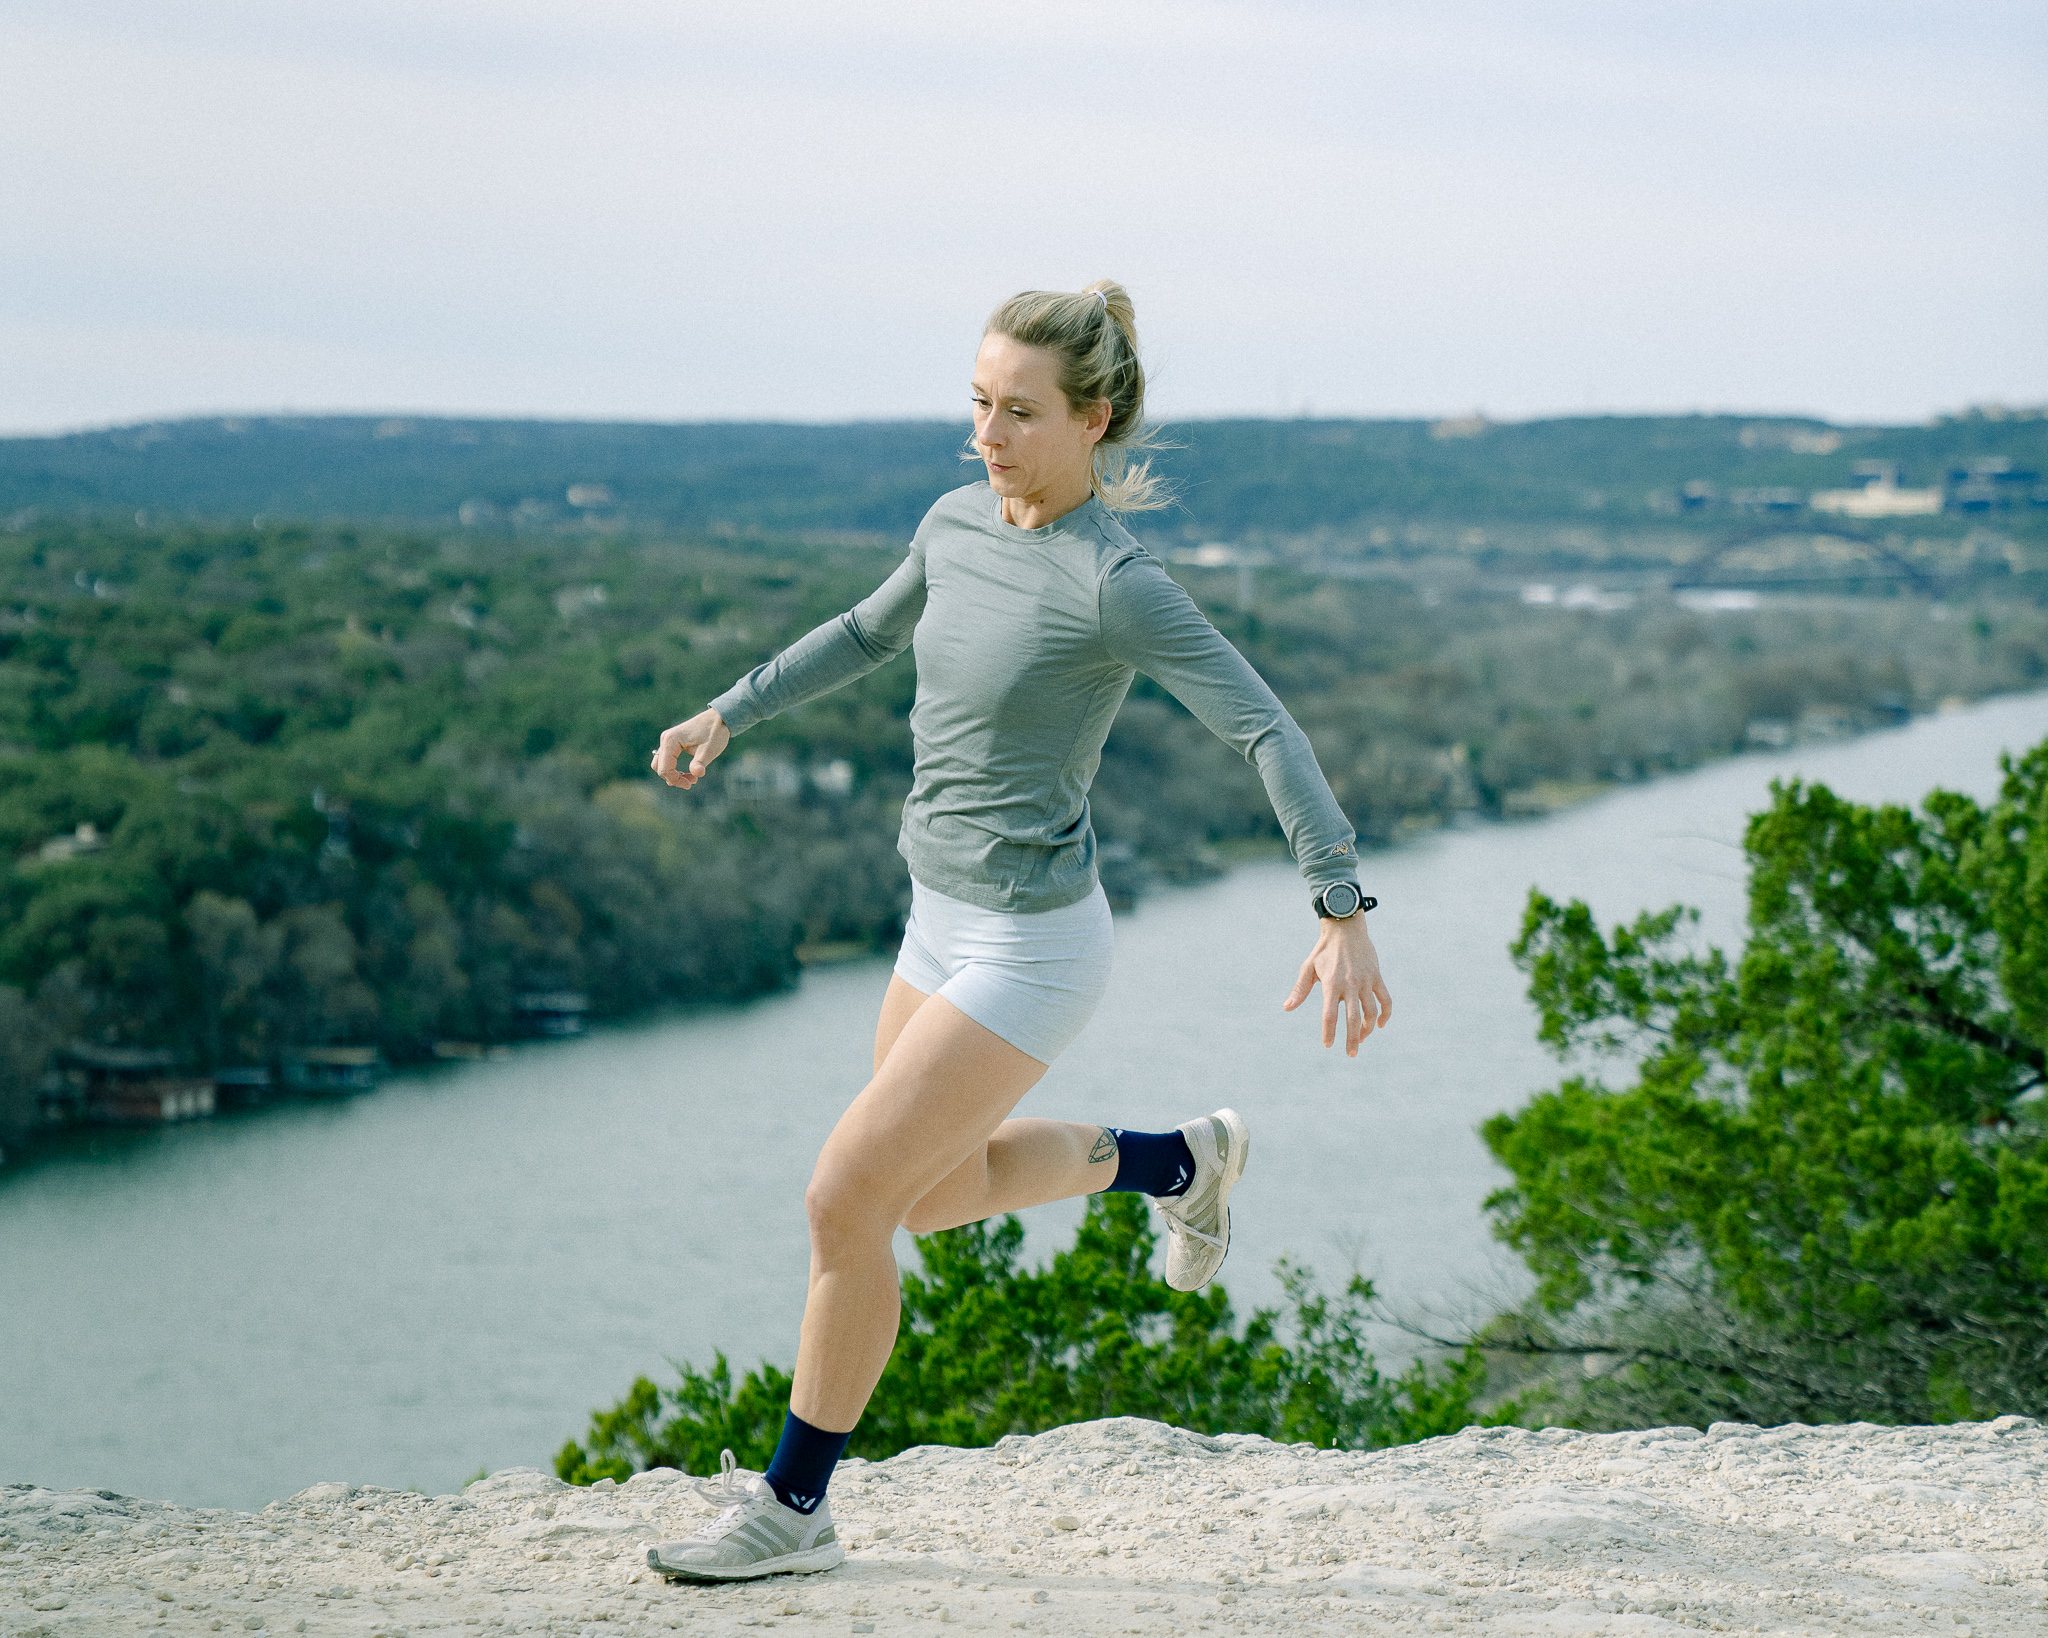 How to Find Your Motivation Again After Setback